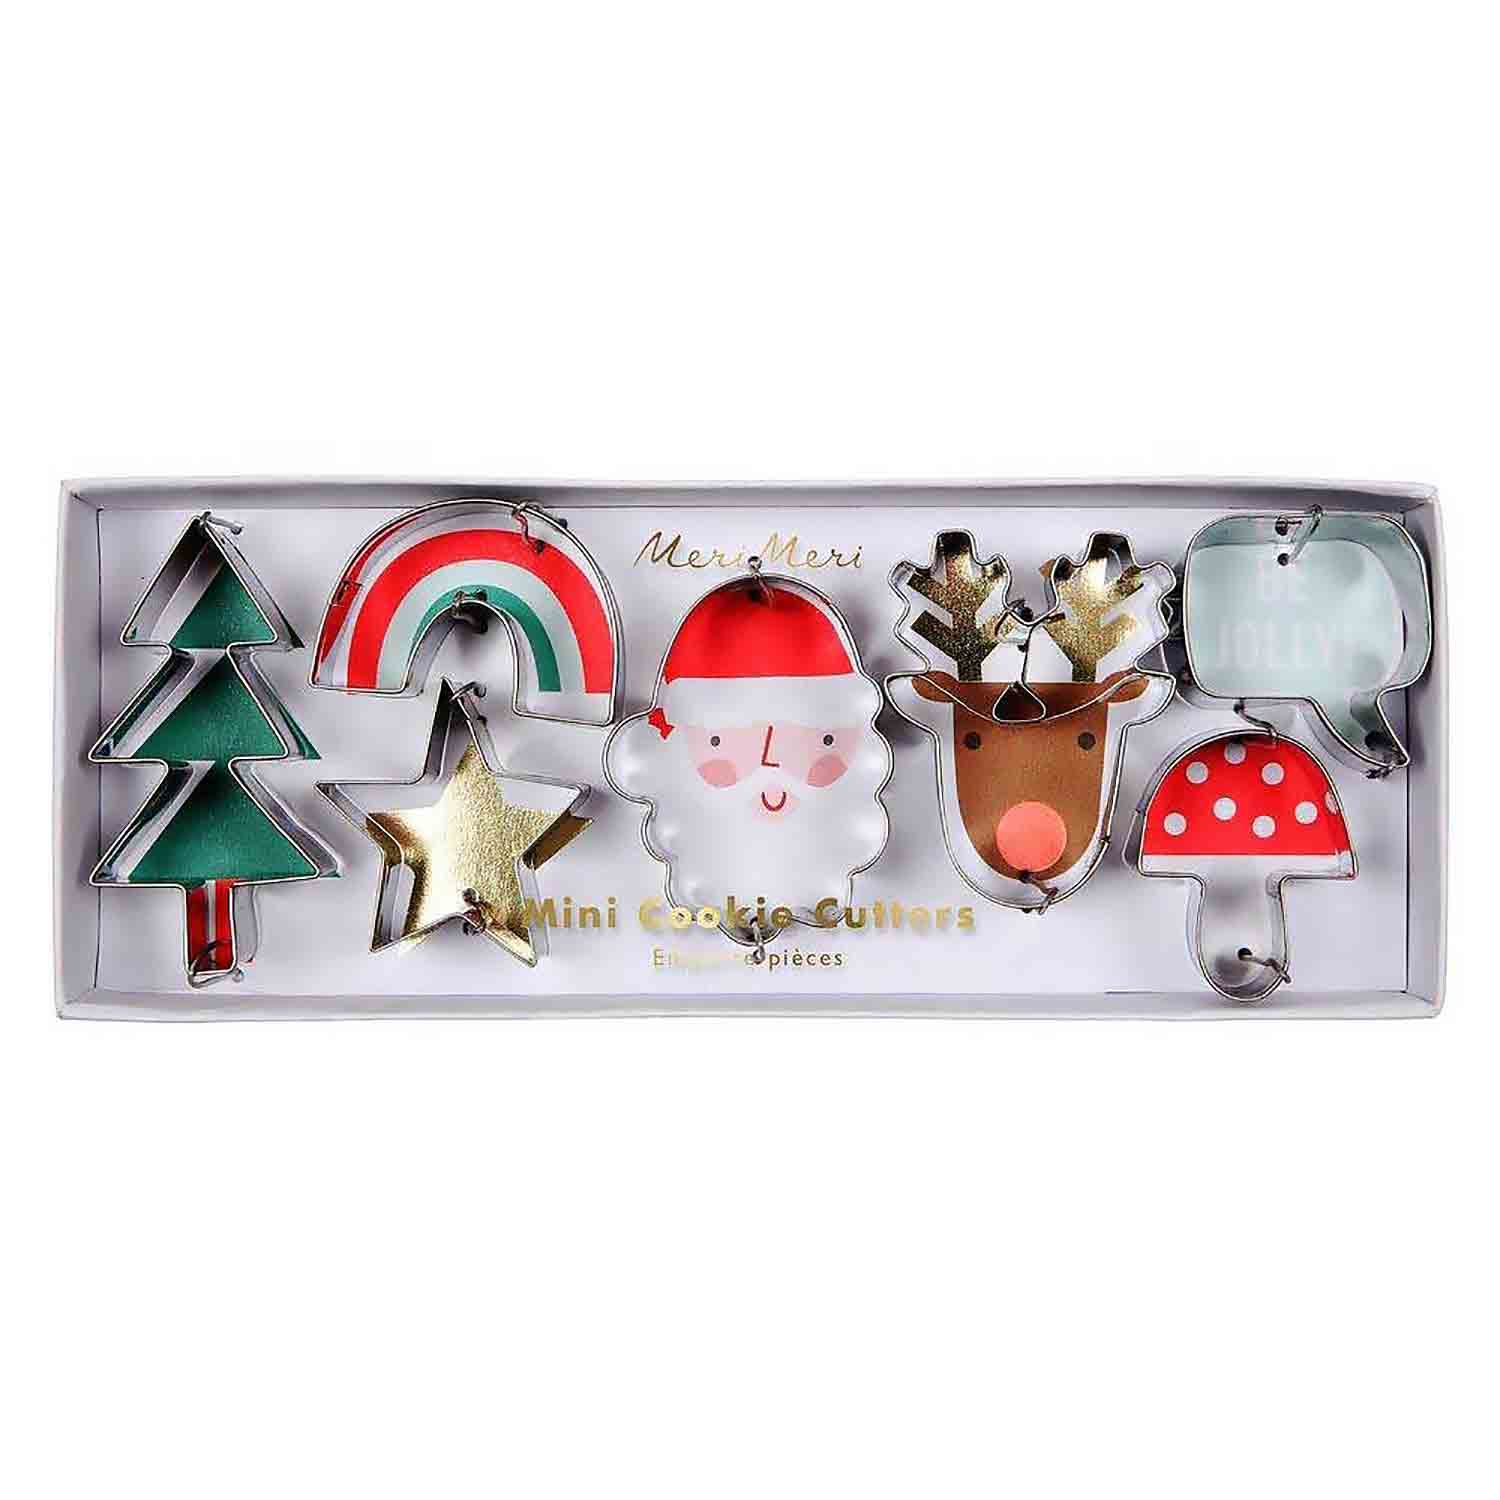 Festive Icon Mini Cookie Cutter Set